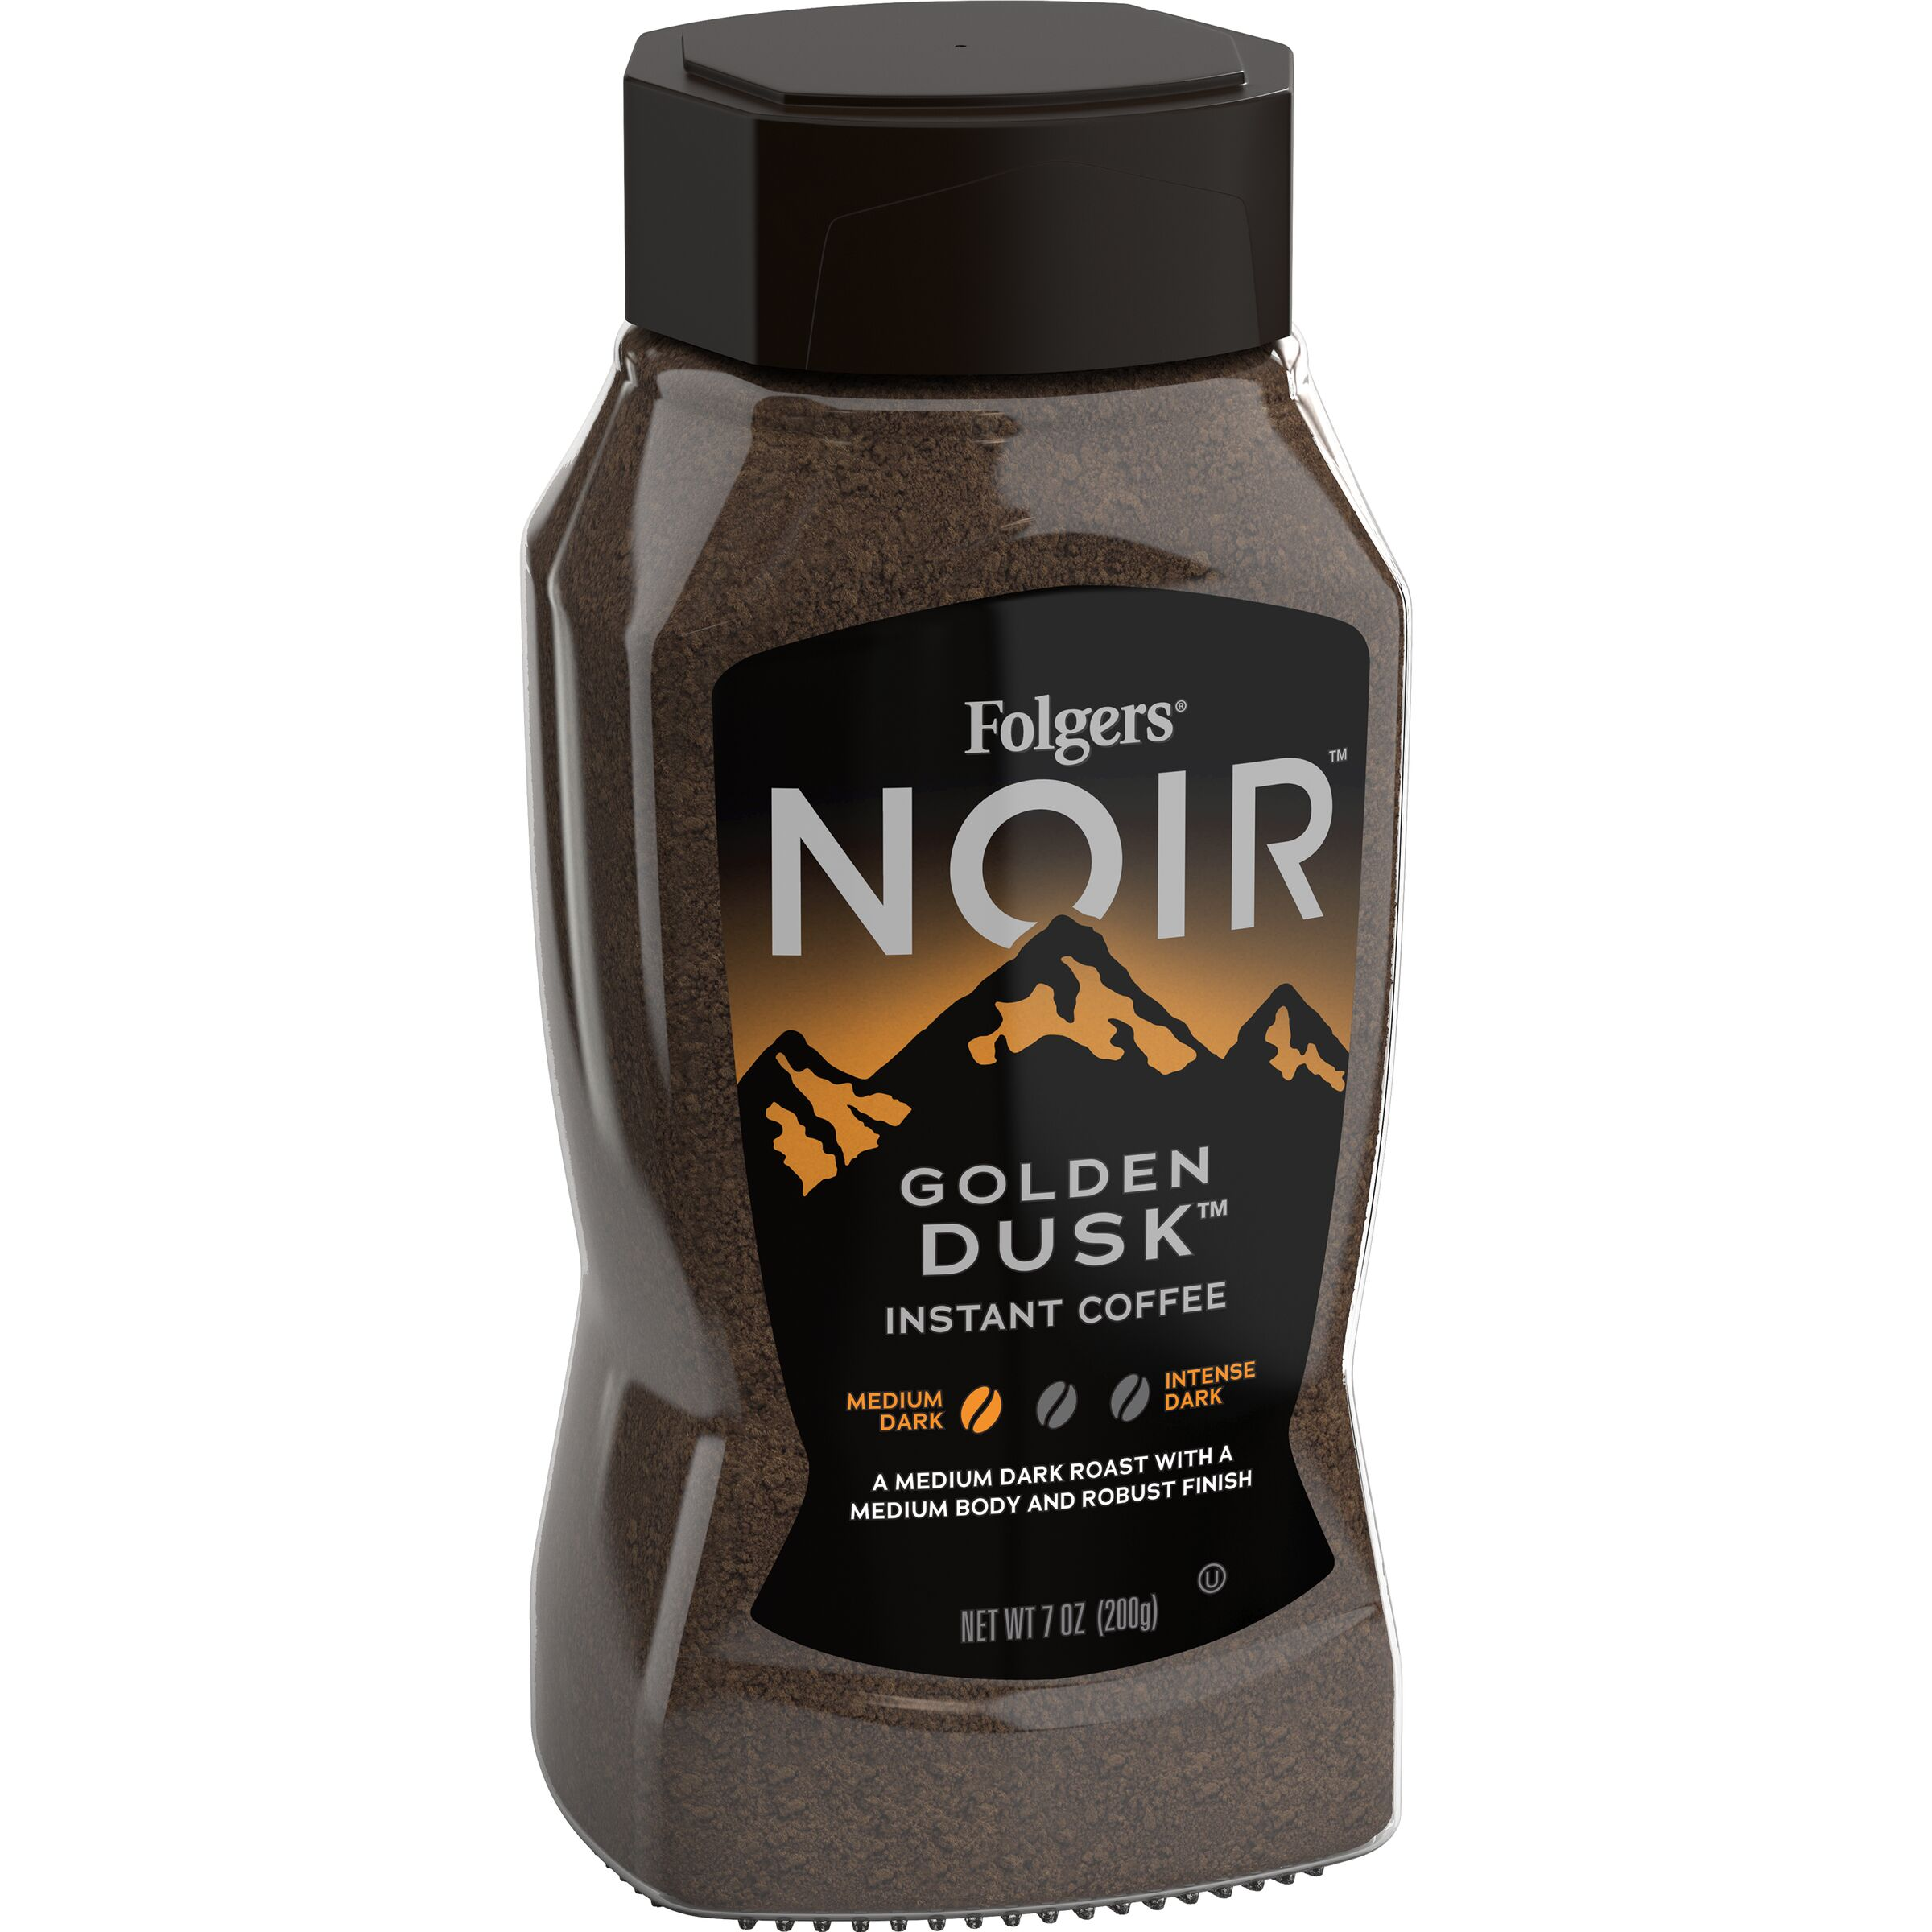 Folgers Noir Golden Dusk™ Instant Coffee